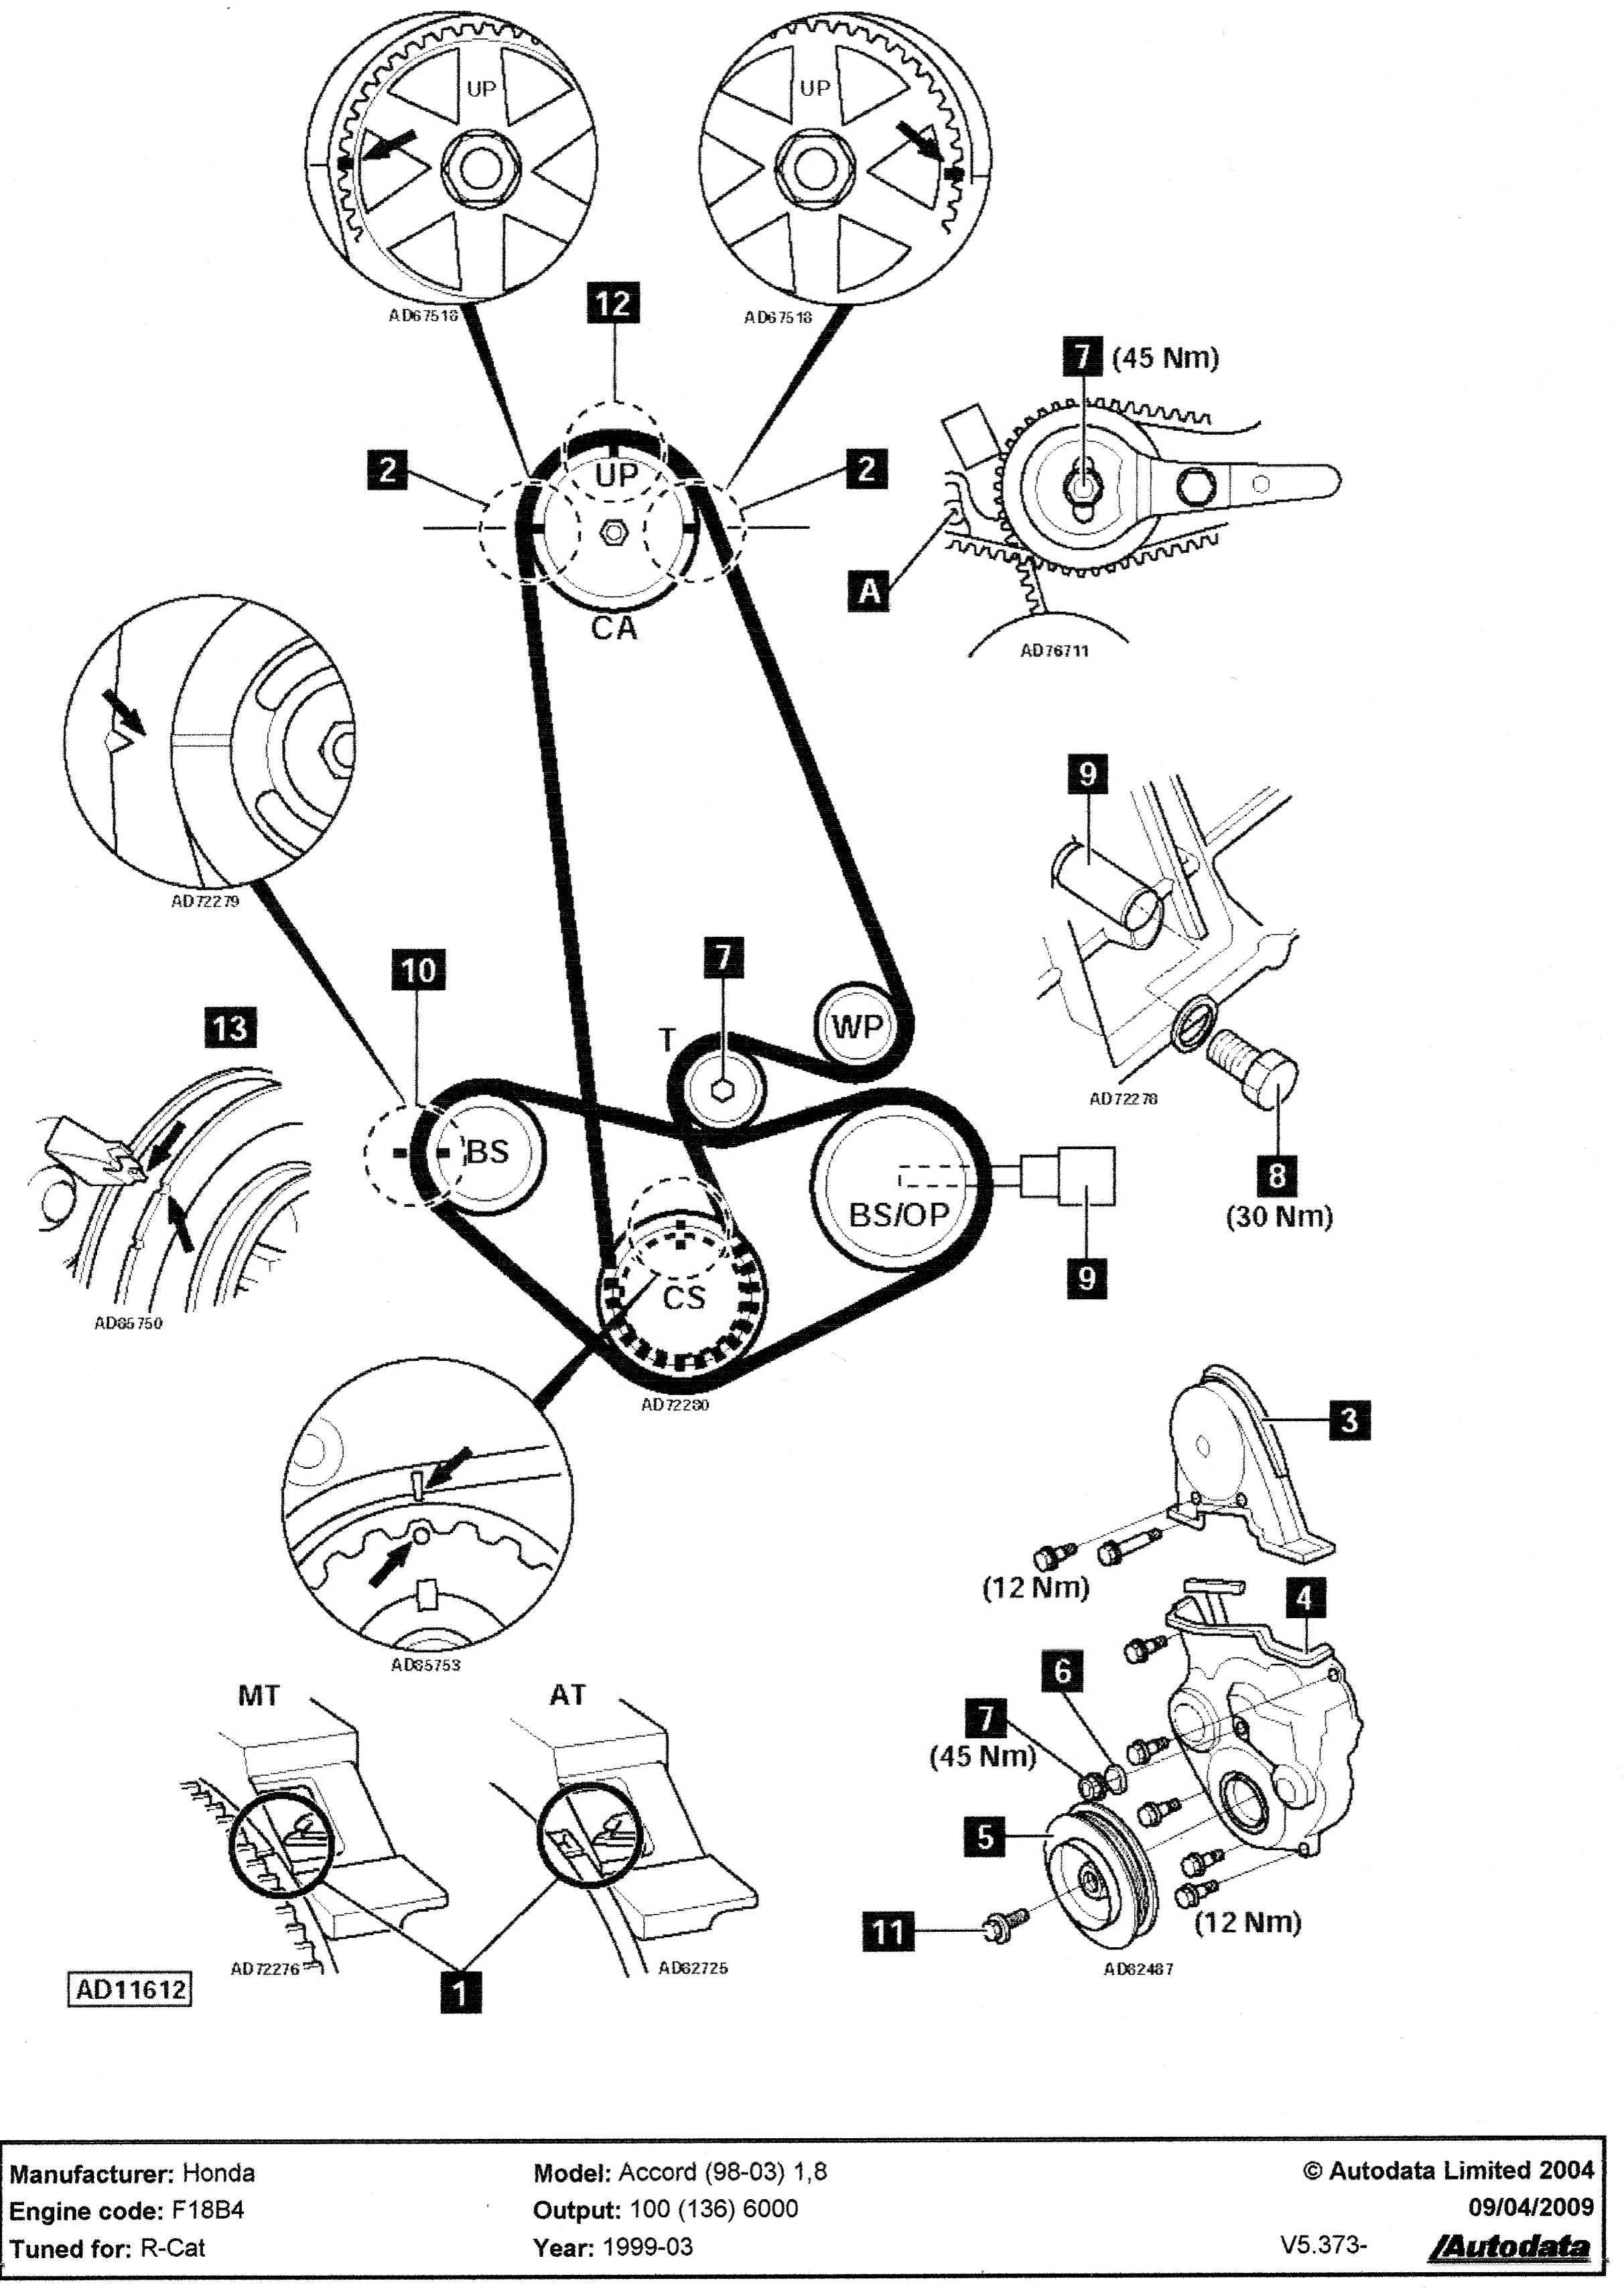 Pathfinder Wiring Diagram For 92 also 1989 Nissan D21 Wiring Diagram further Honda Prelude Parts Diagram Auto Wiring together with  moreover Ka24de Wiring Diagram. on 1992 nissan 240sx wiring diagram